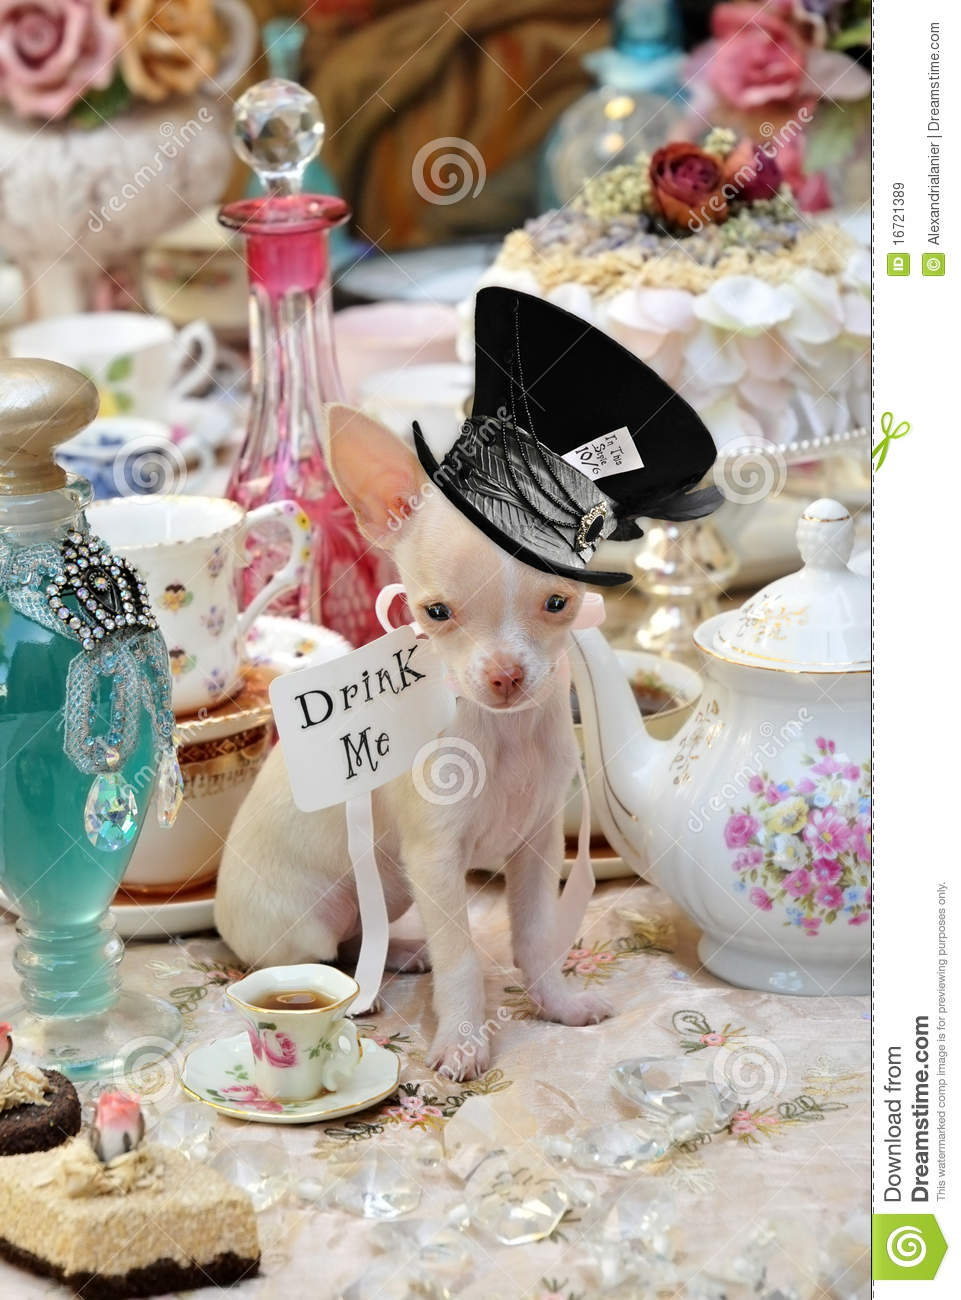 Alice in den Märchenland Teaparty Chihuahua